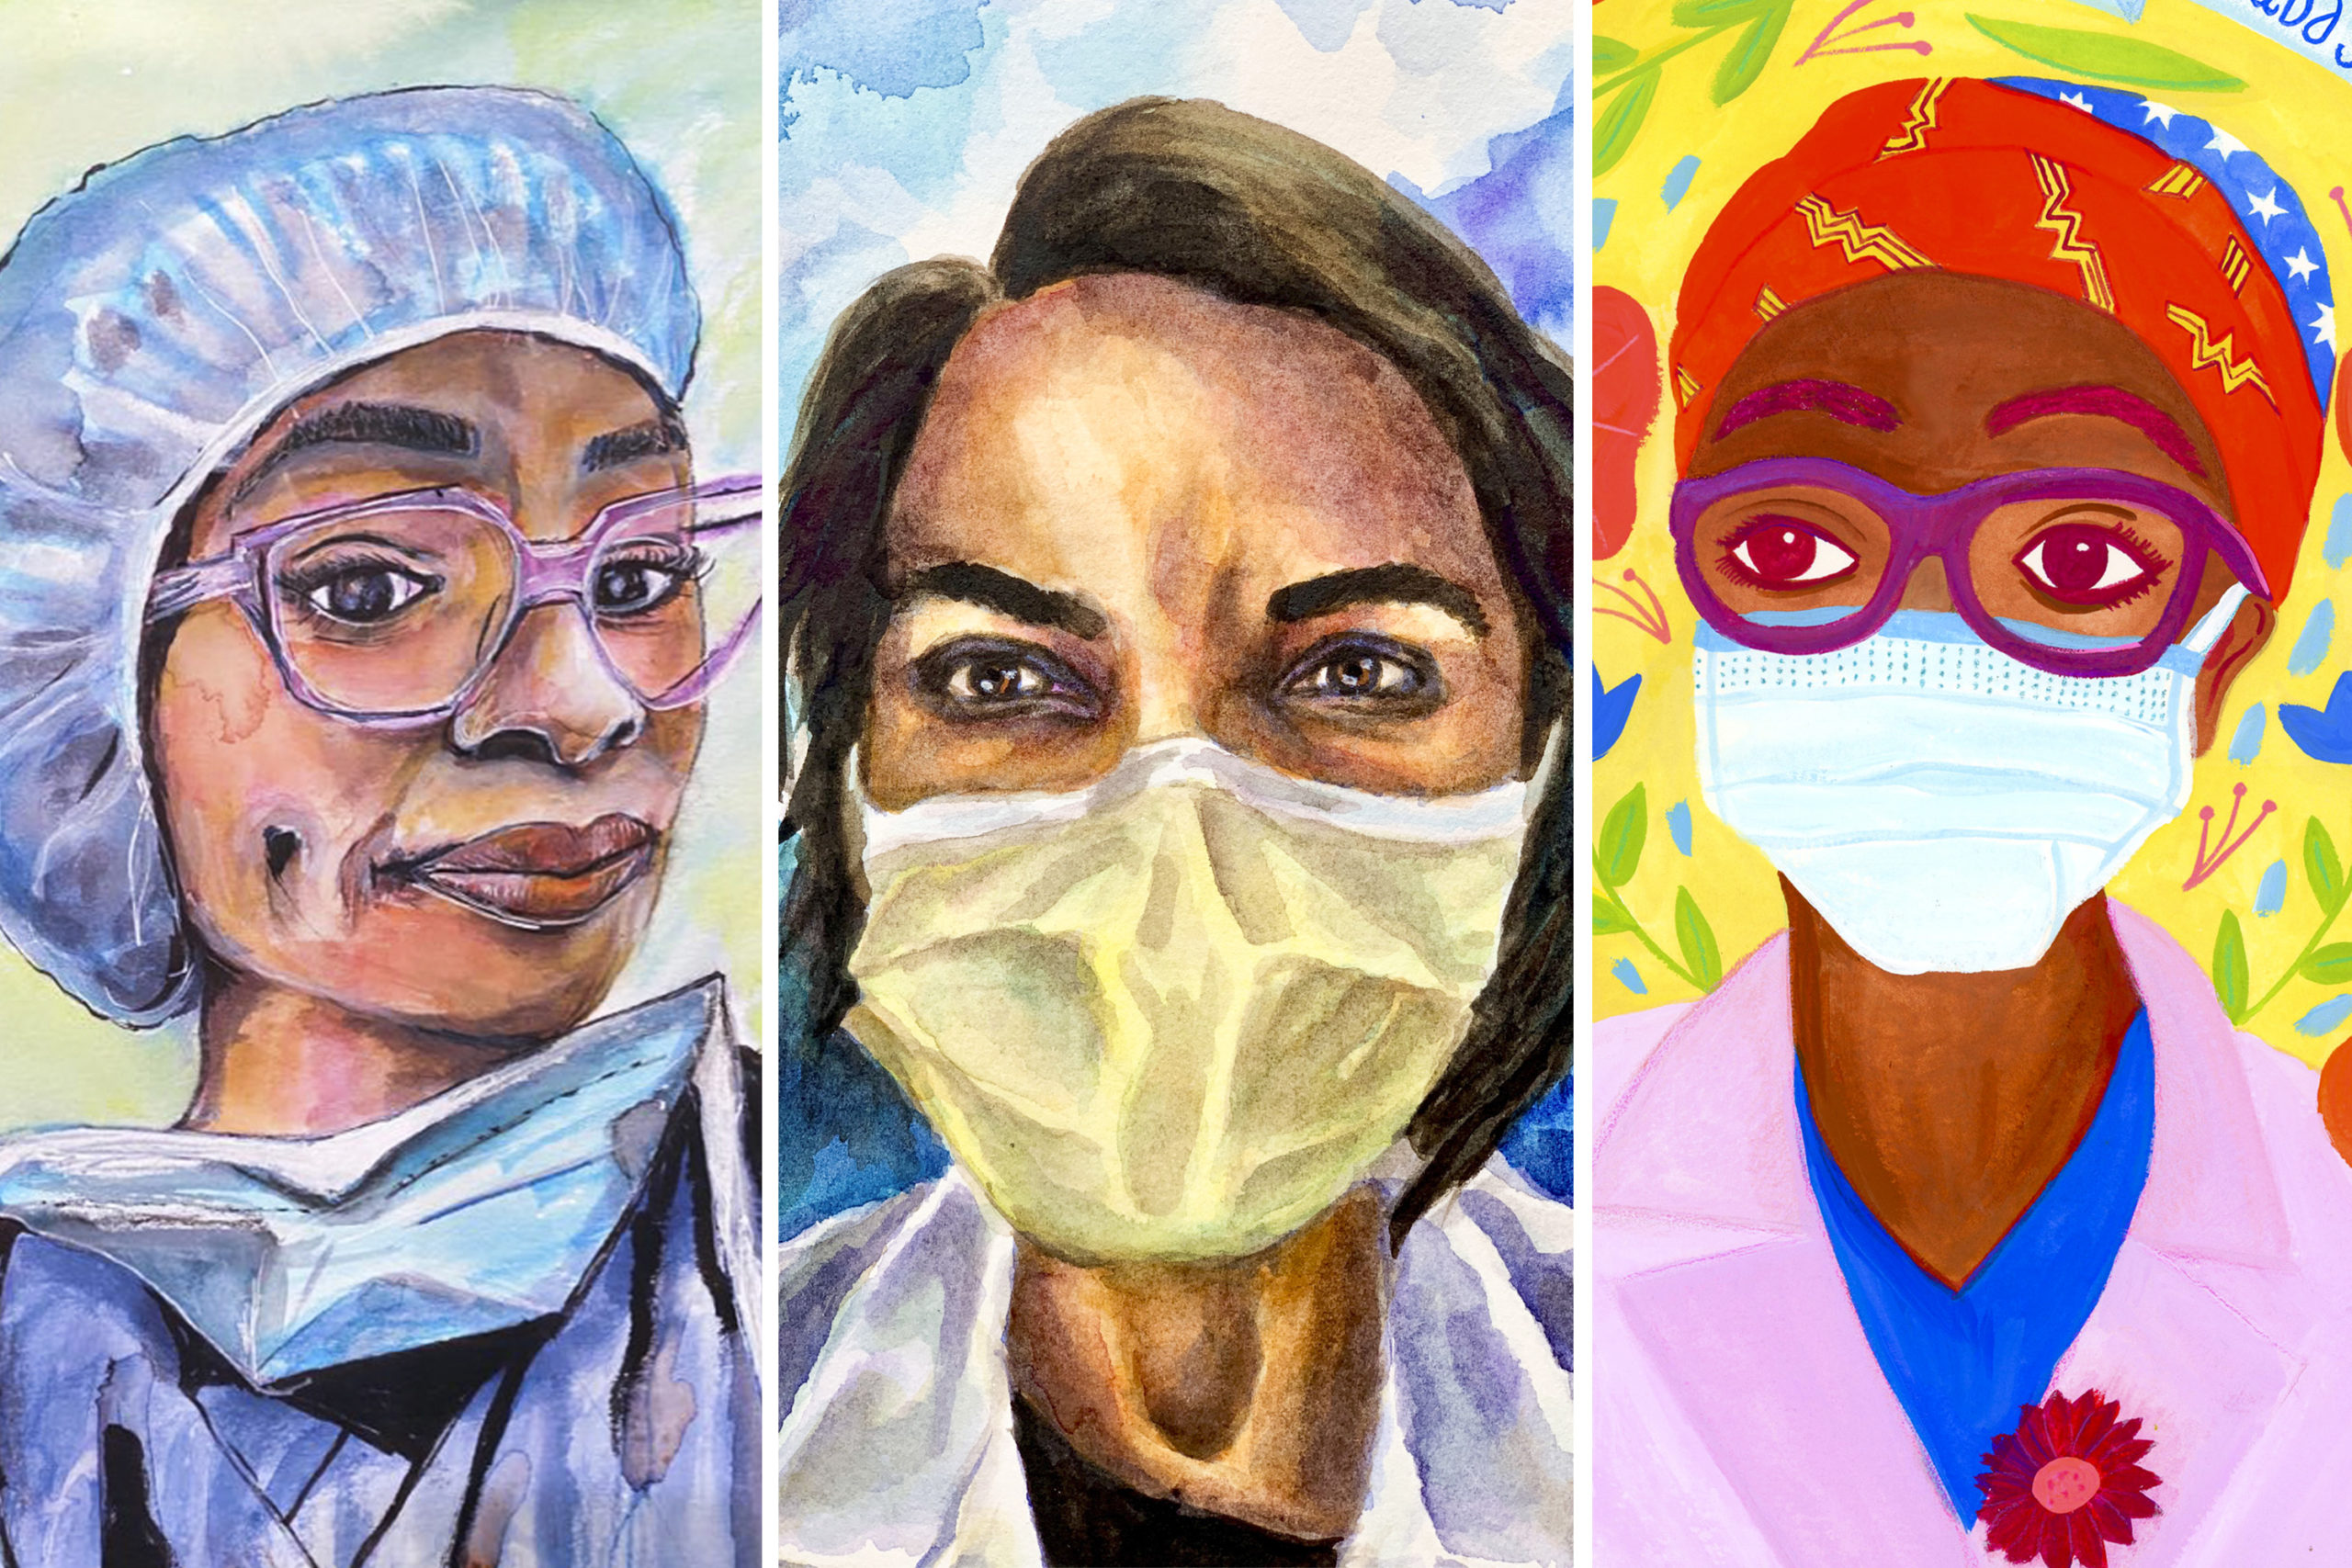 (from left to right) Dr. Kamaria Cayton Vaught, by Anu Gupta; Dr. Shanta Zimmer, by Amy Moore; Dr. Huda Sayed-Johnny by Andrea Floren